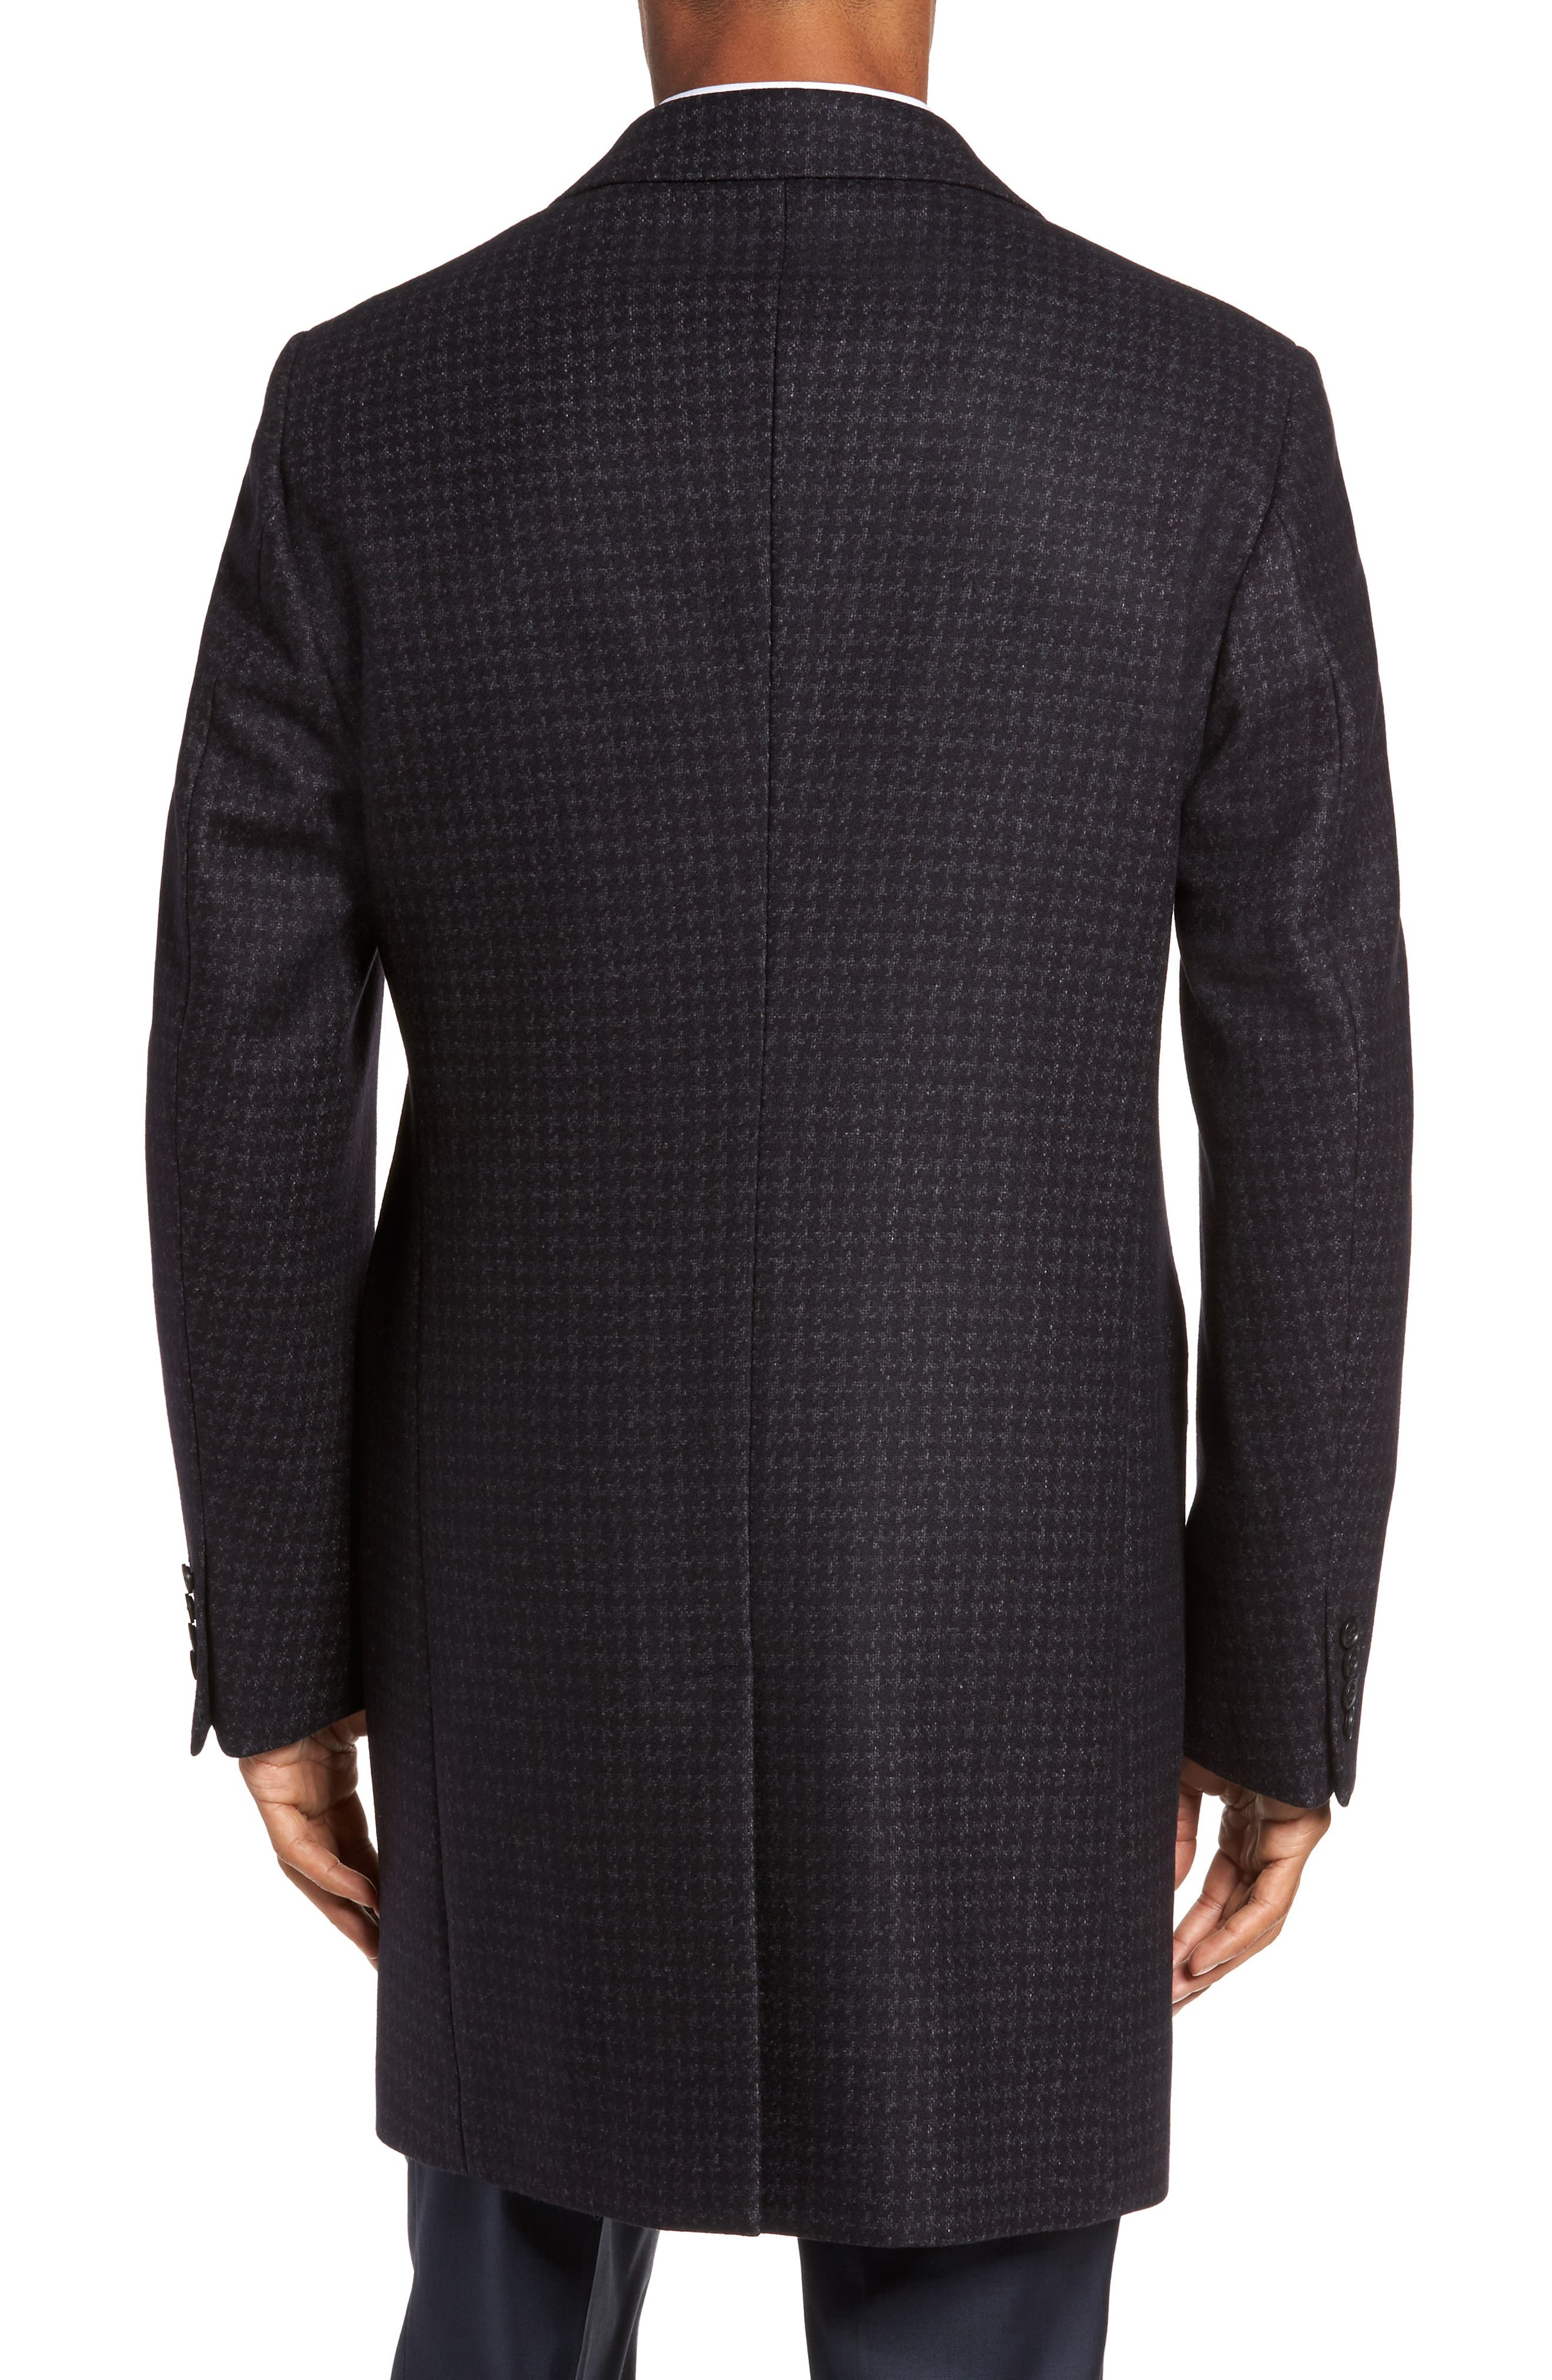 Jackson Houndstooth Wool Blend Overcoat,                             Alternate thumbnail 2, color,                             Navy